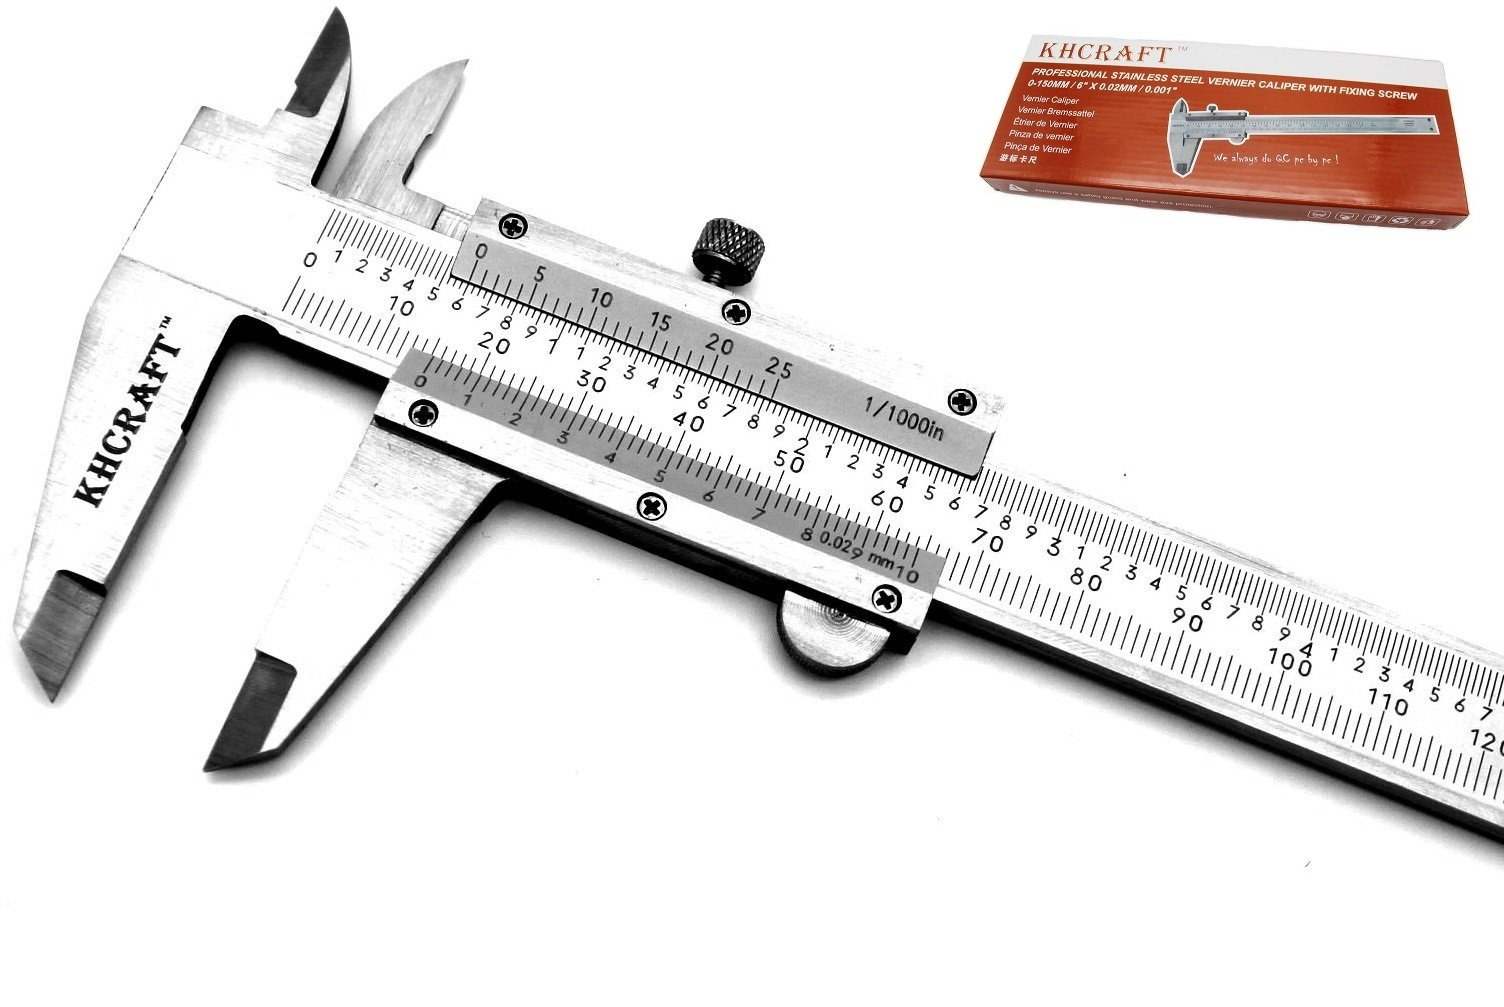 KHCRAFT Professional Caliper Vernier Caliper Stainless Steel Hardened Chromeplated Inch/Metric 0-6''/150mmx0.001''/0.02mm for Precision Measurements Outside/Inside/Depth/Step Packed in Storage Case